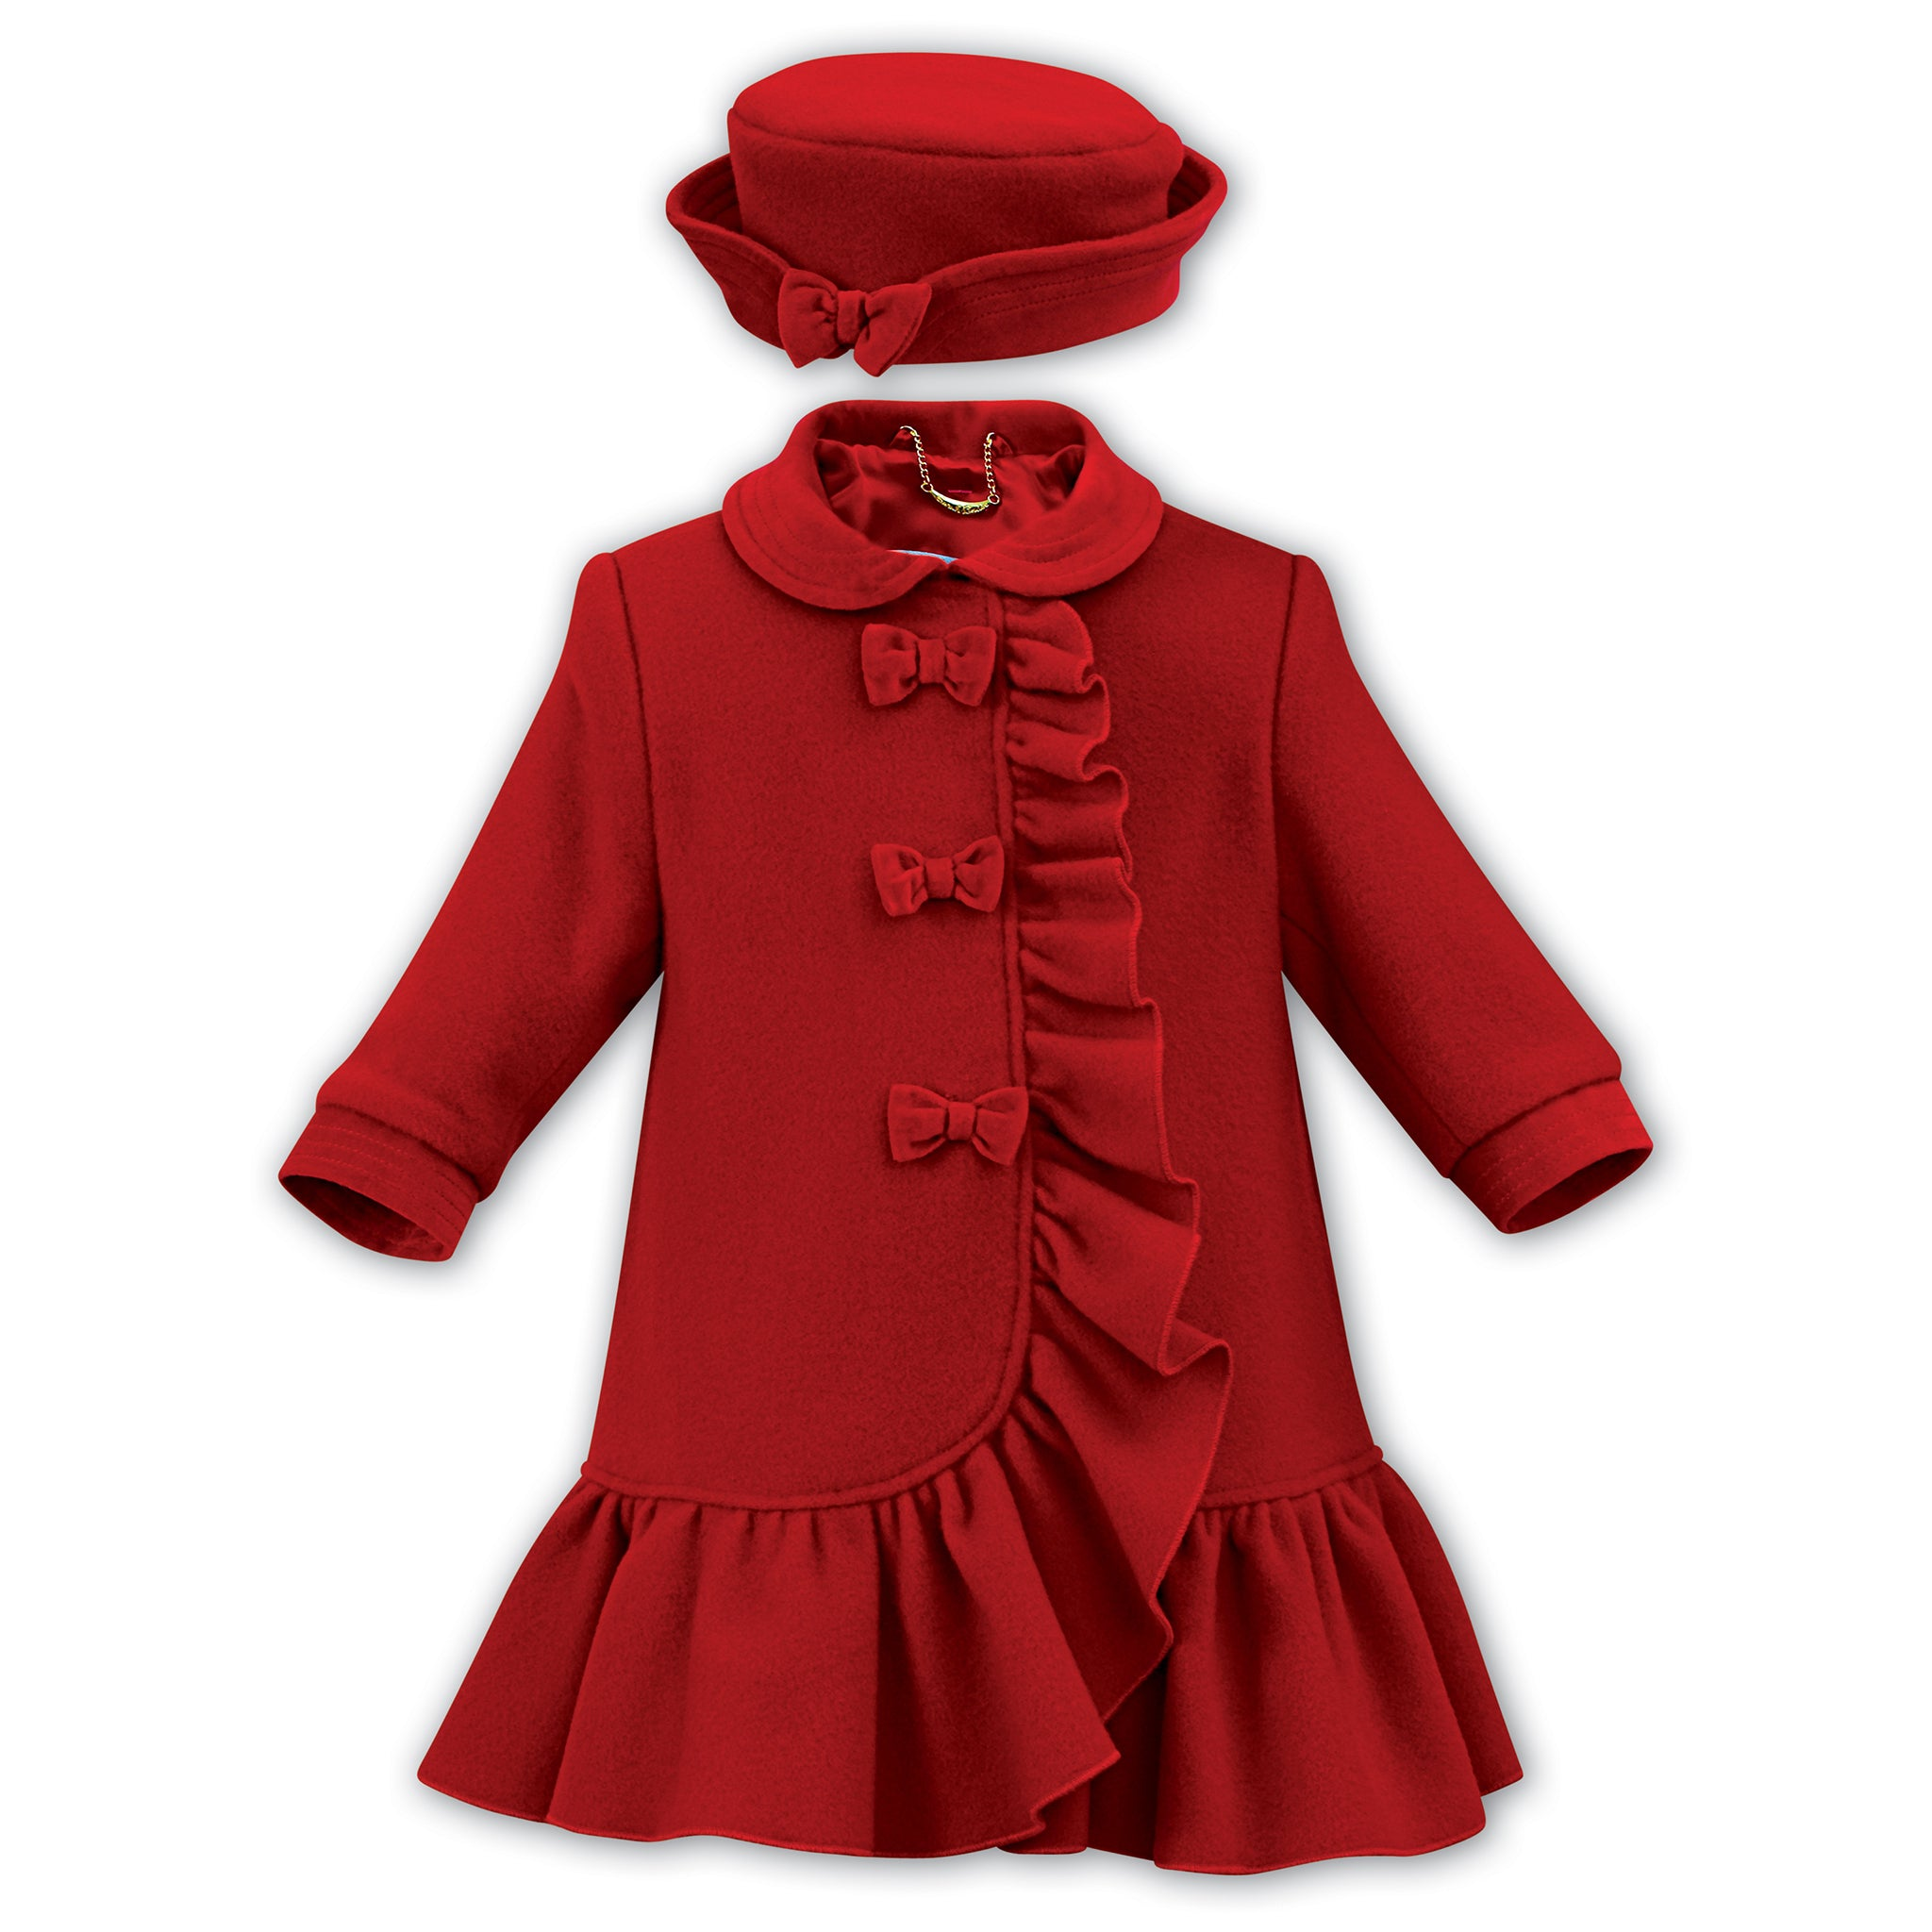 da0522f2d Sarah Louise Red Wool Coat   Hat Set